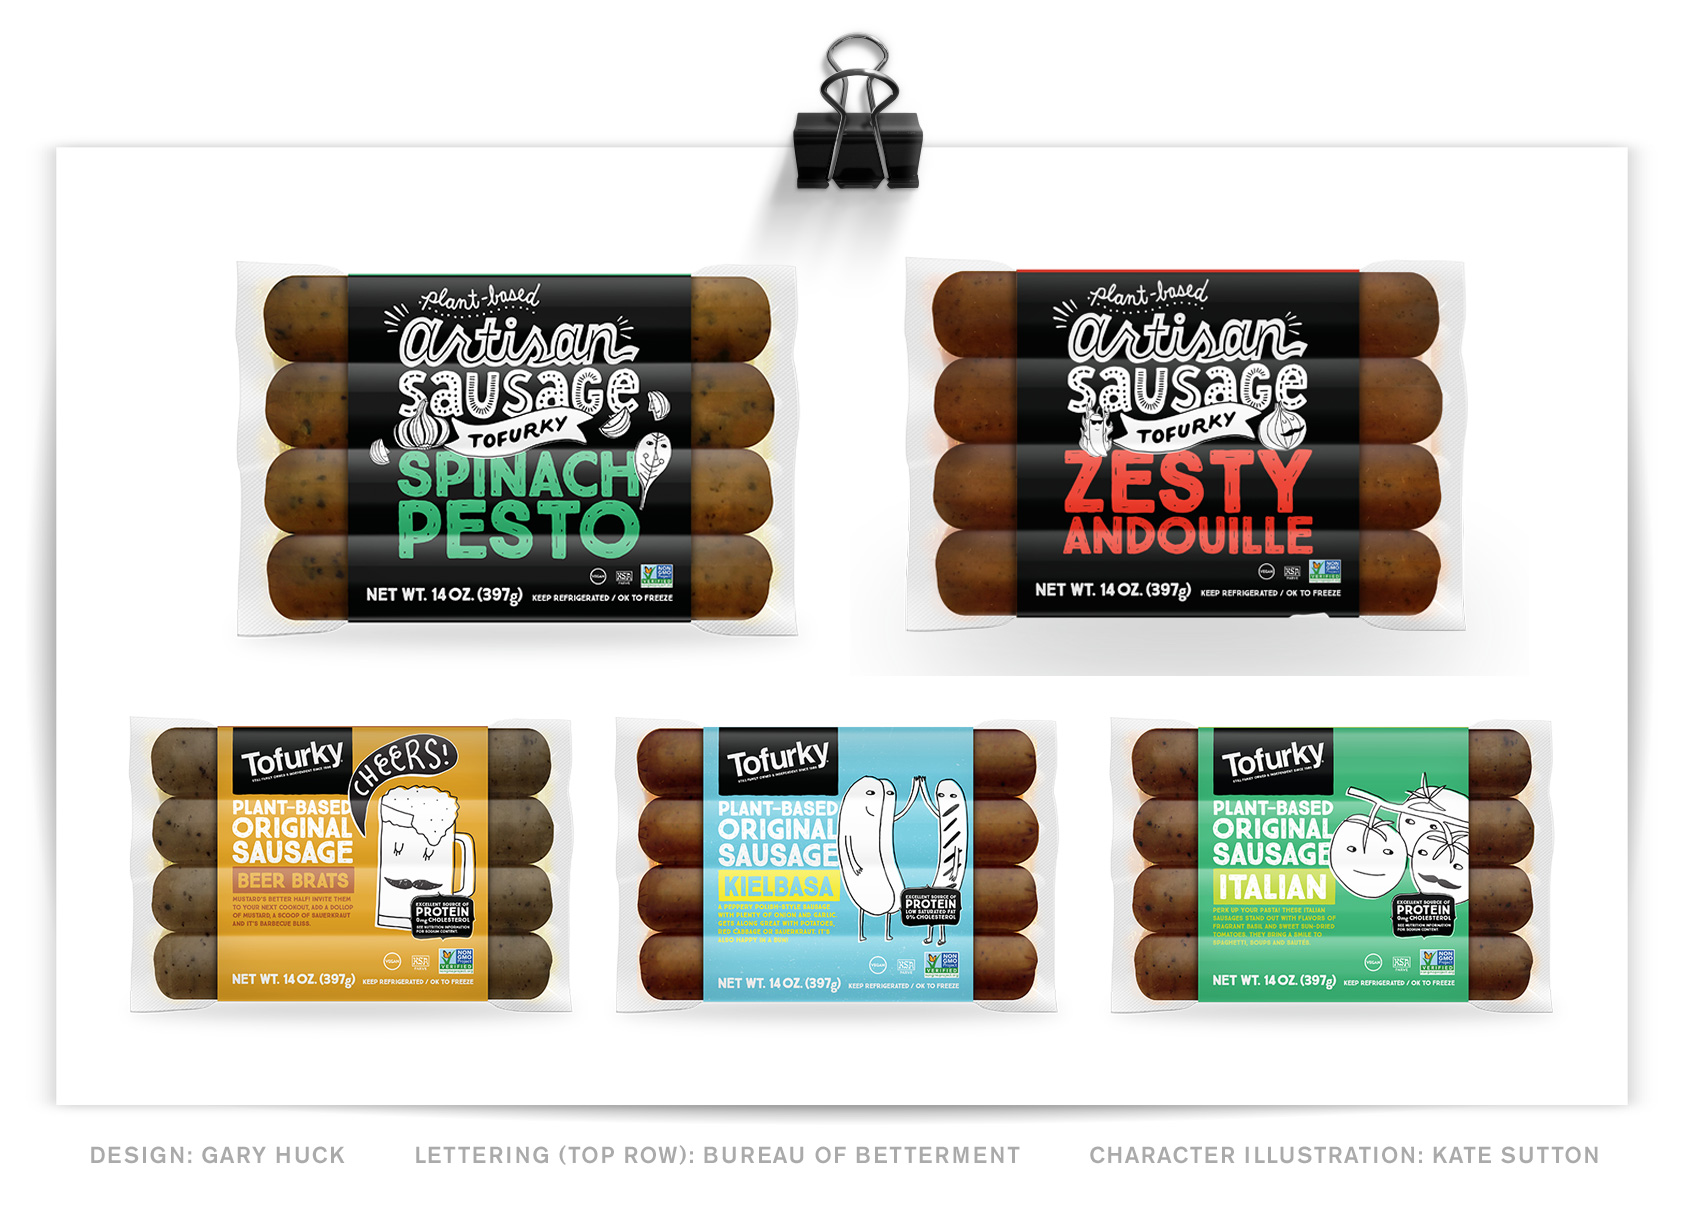 Hand lettering featured on Tofurky artisan sausage packaging.